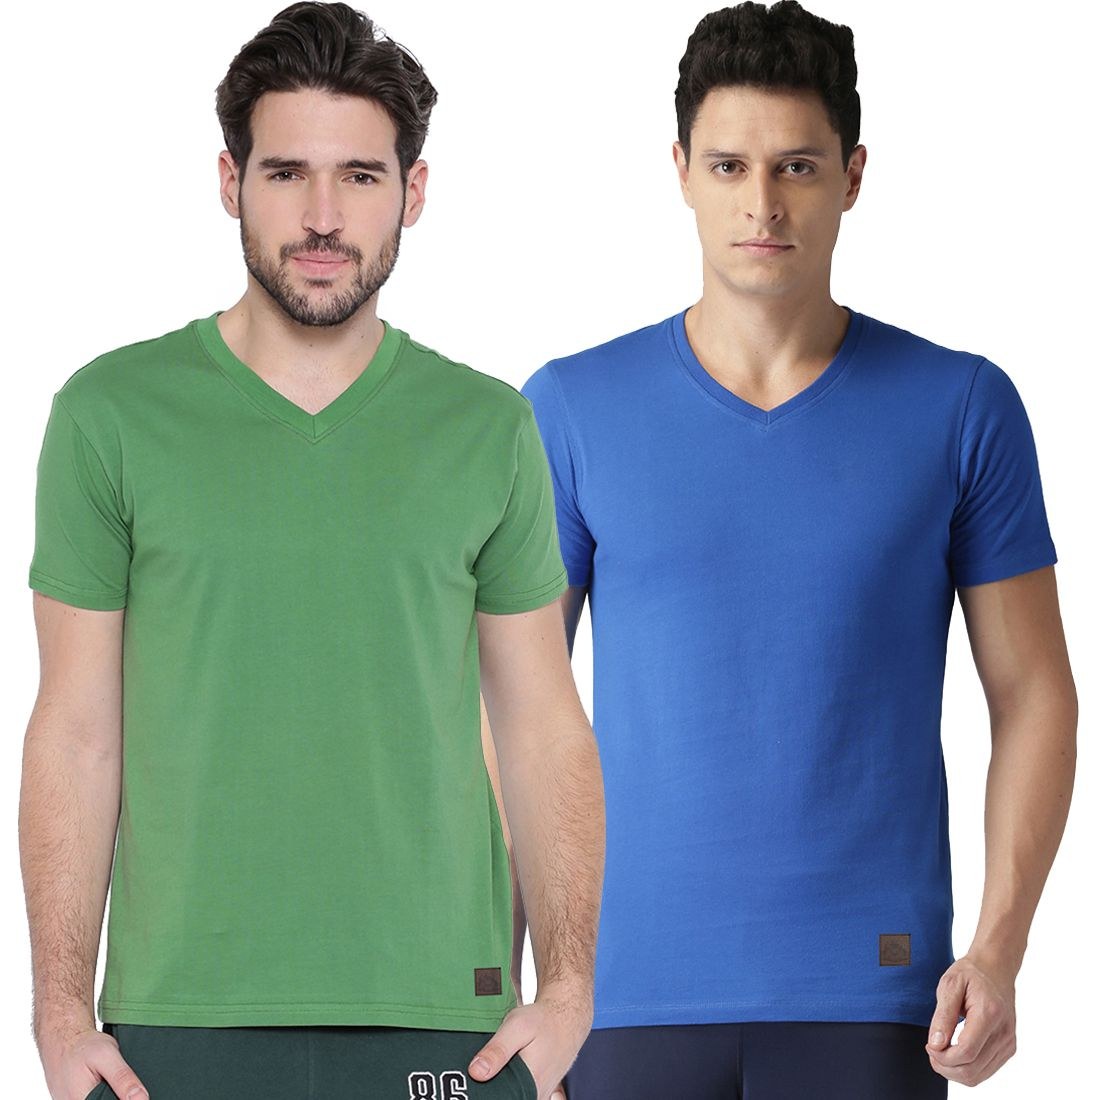 Polo Nation Multi V-Neck T-Shirt Pack of 2